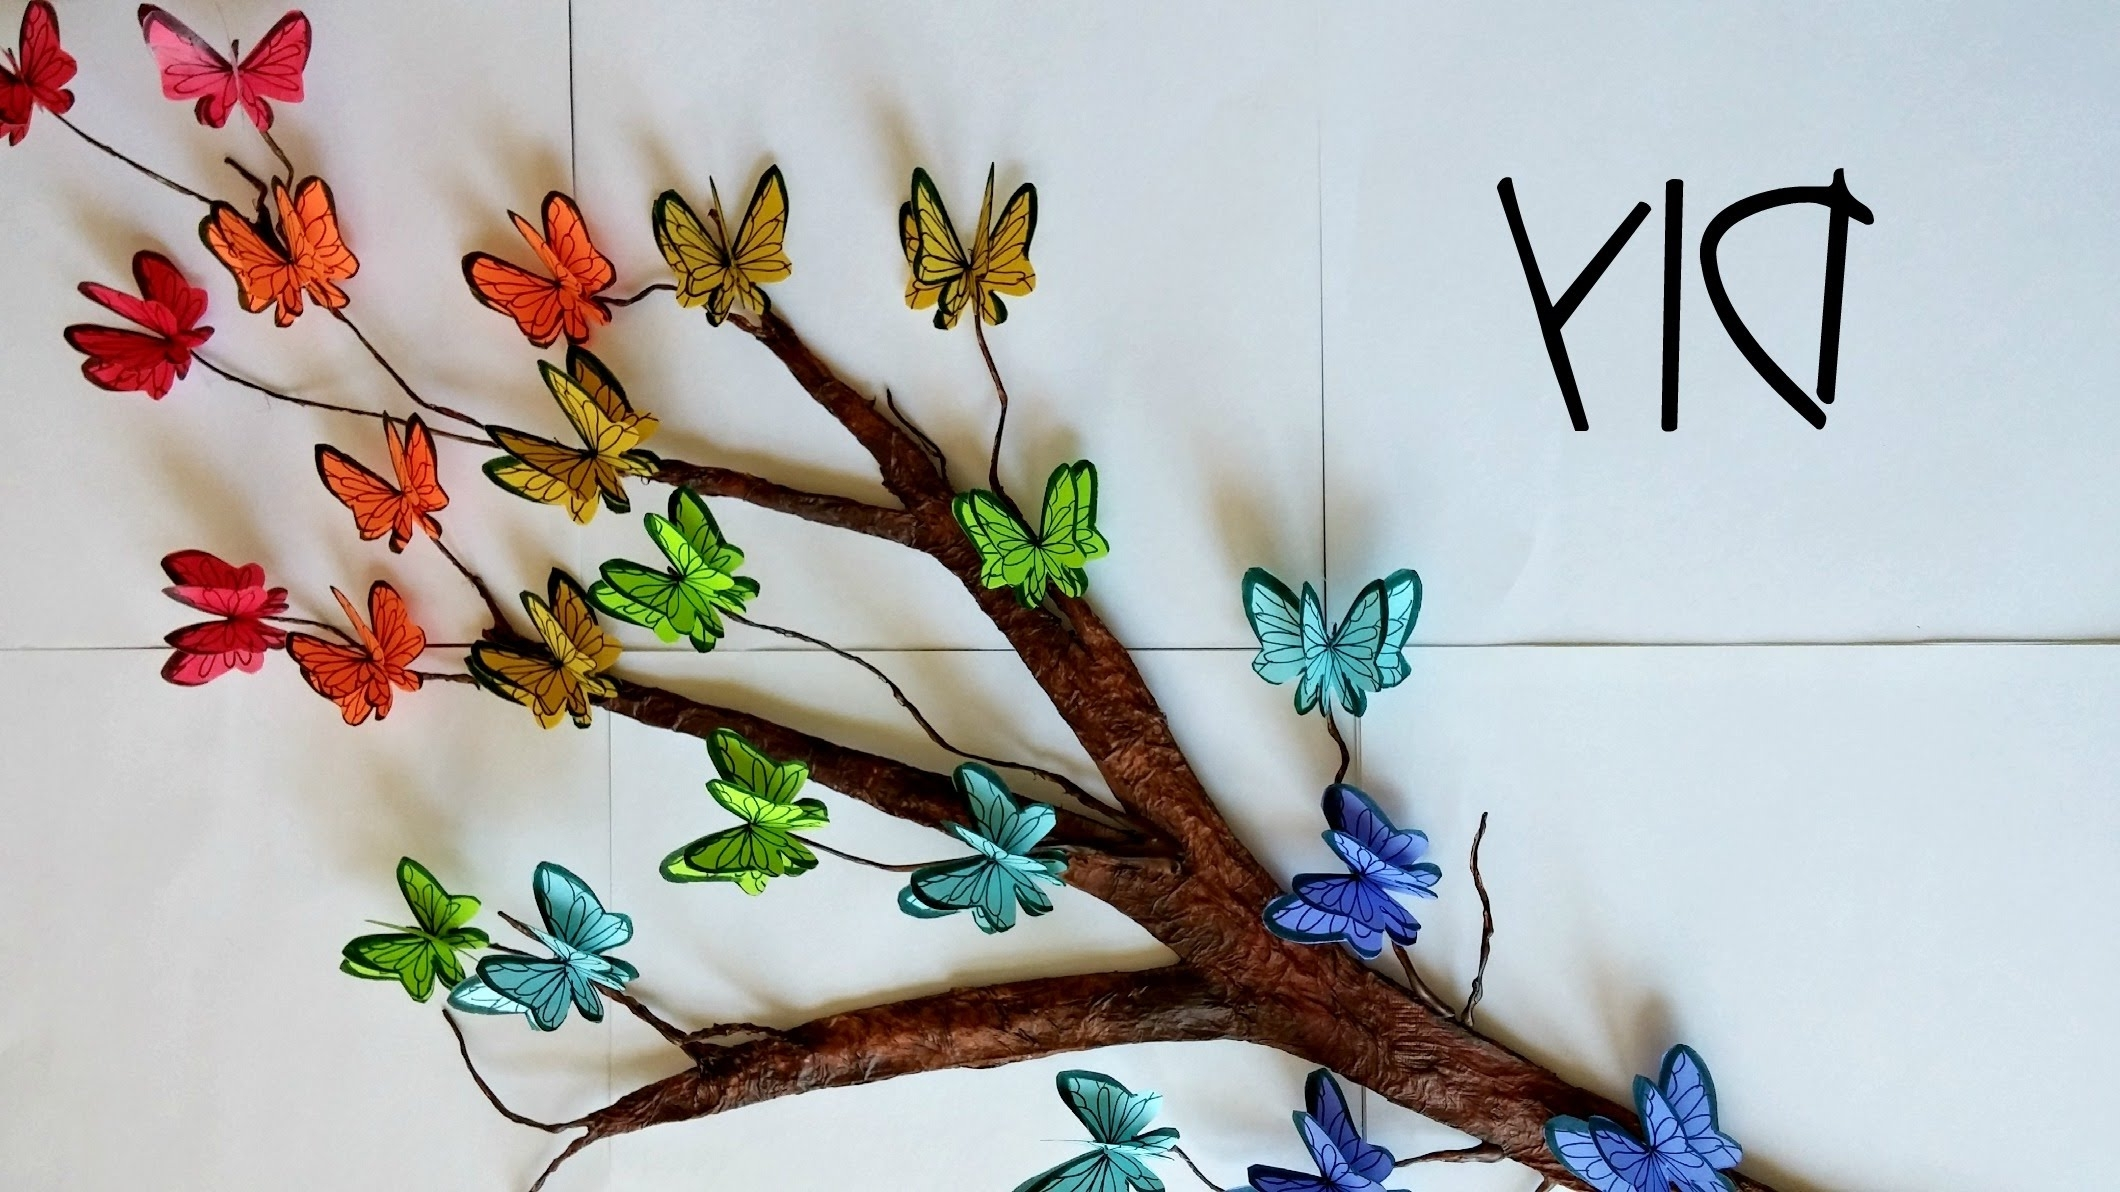 Diy Tree Branch + 3D Butterflies ♥ // Room Decor – Youtube Throughout Recent Diy 3D Butterfly Wall Art (View 8 of 15)